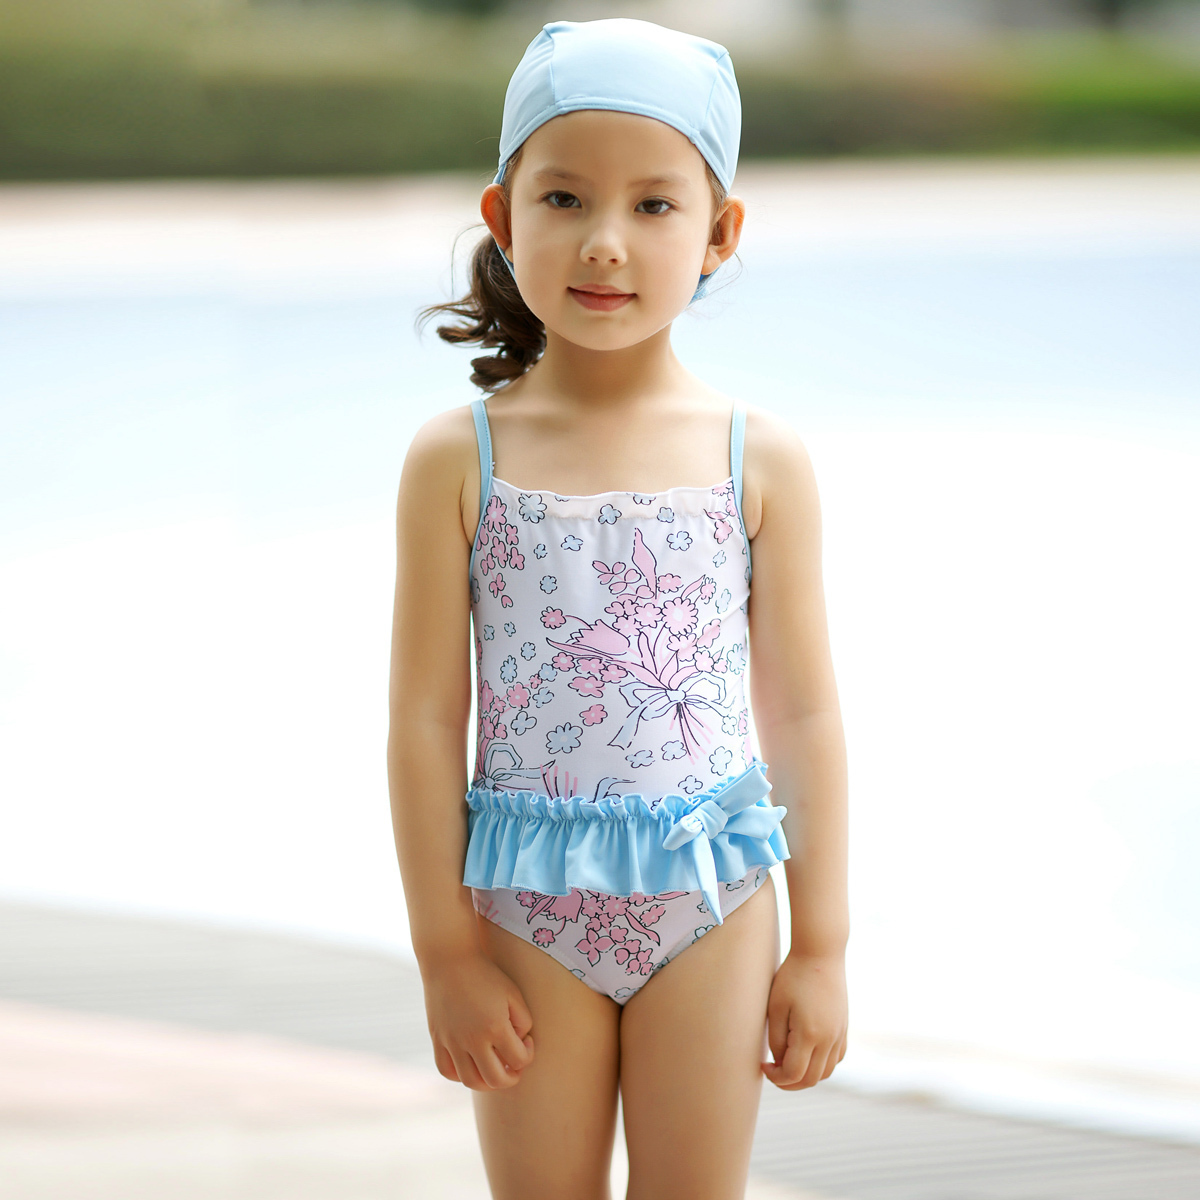 Child Swimsuit Models http://www.9channel.com/taobao/product-5013723450395-Kids-swimwear-girls-bathing-suits-Korea-swimsuit-2012-new-Korean-girl-child-swimwear.html